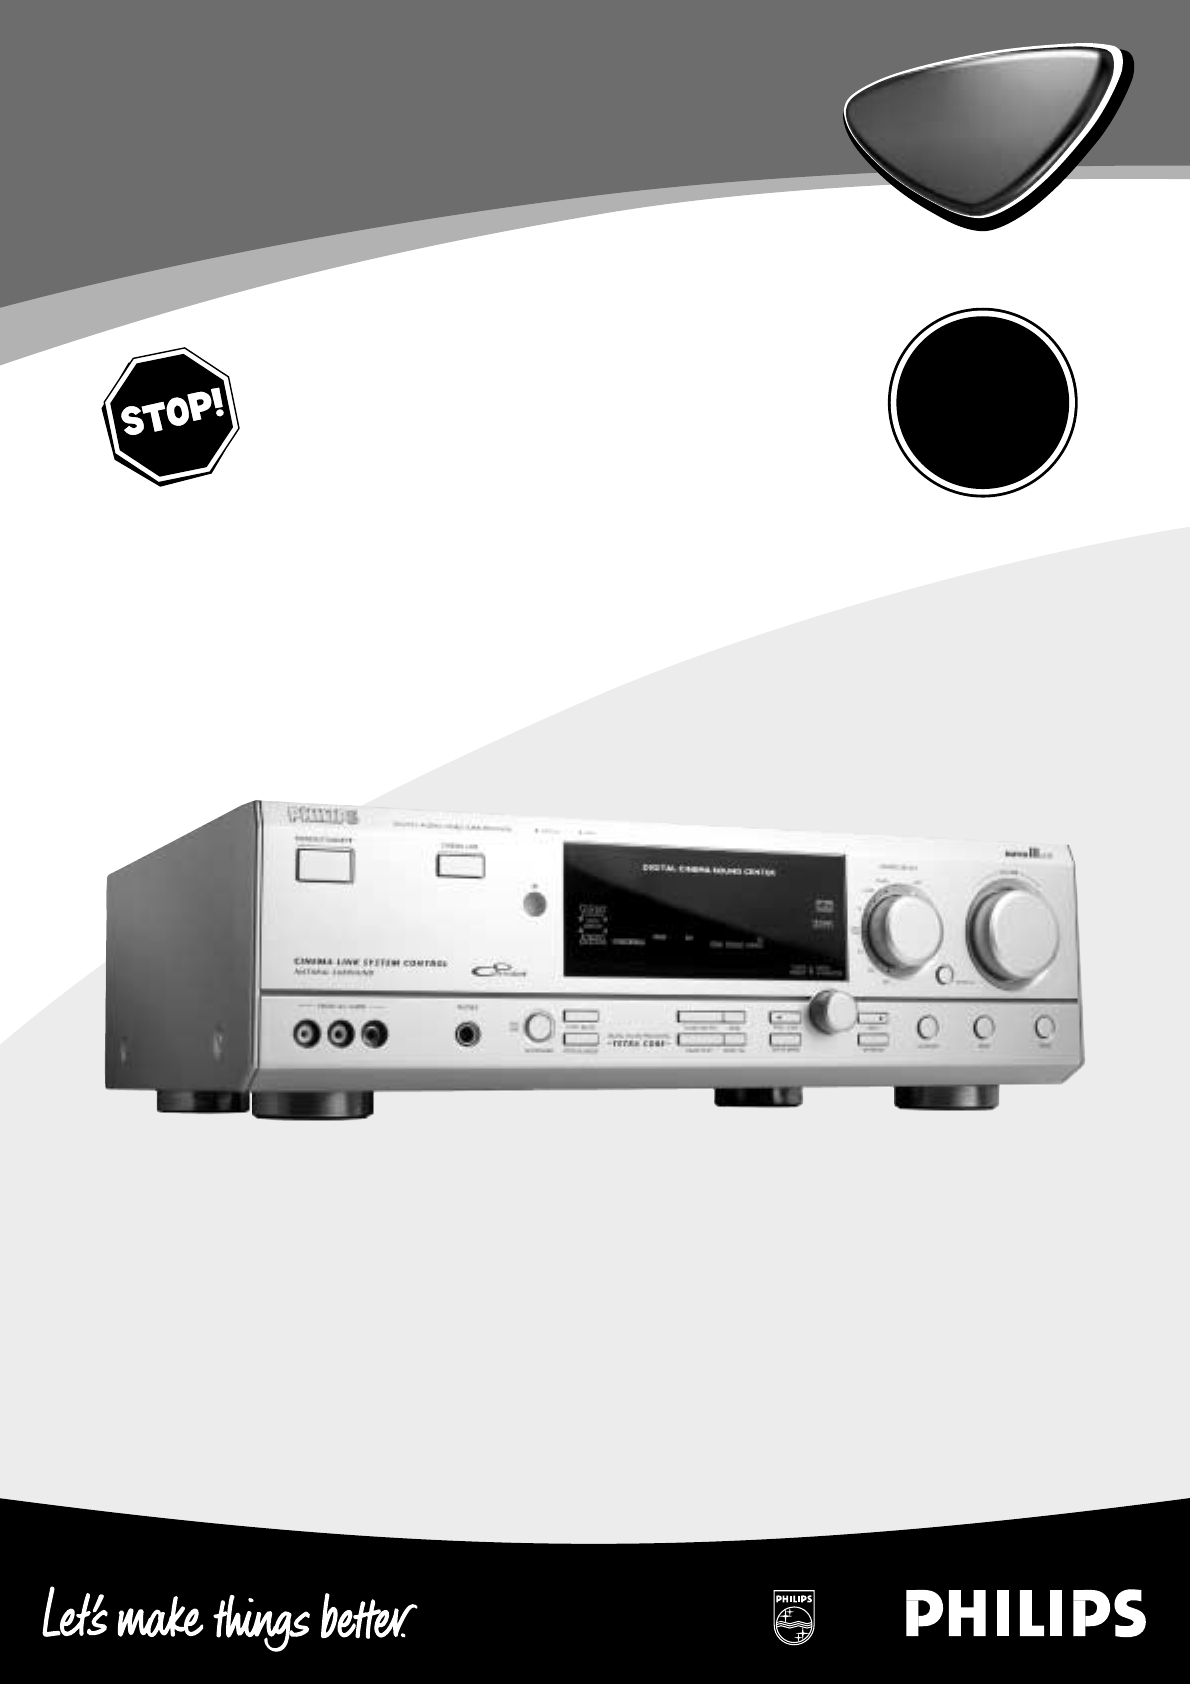 philips home theater system fr 963 user guide manualsonline com rh audio manualsonline com philips home theater hts3371d manual philips home theater hts3555 manual